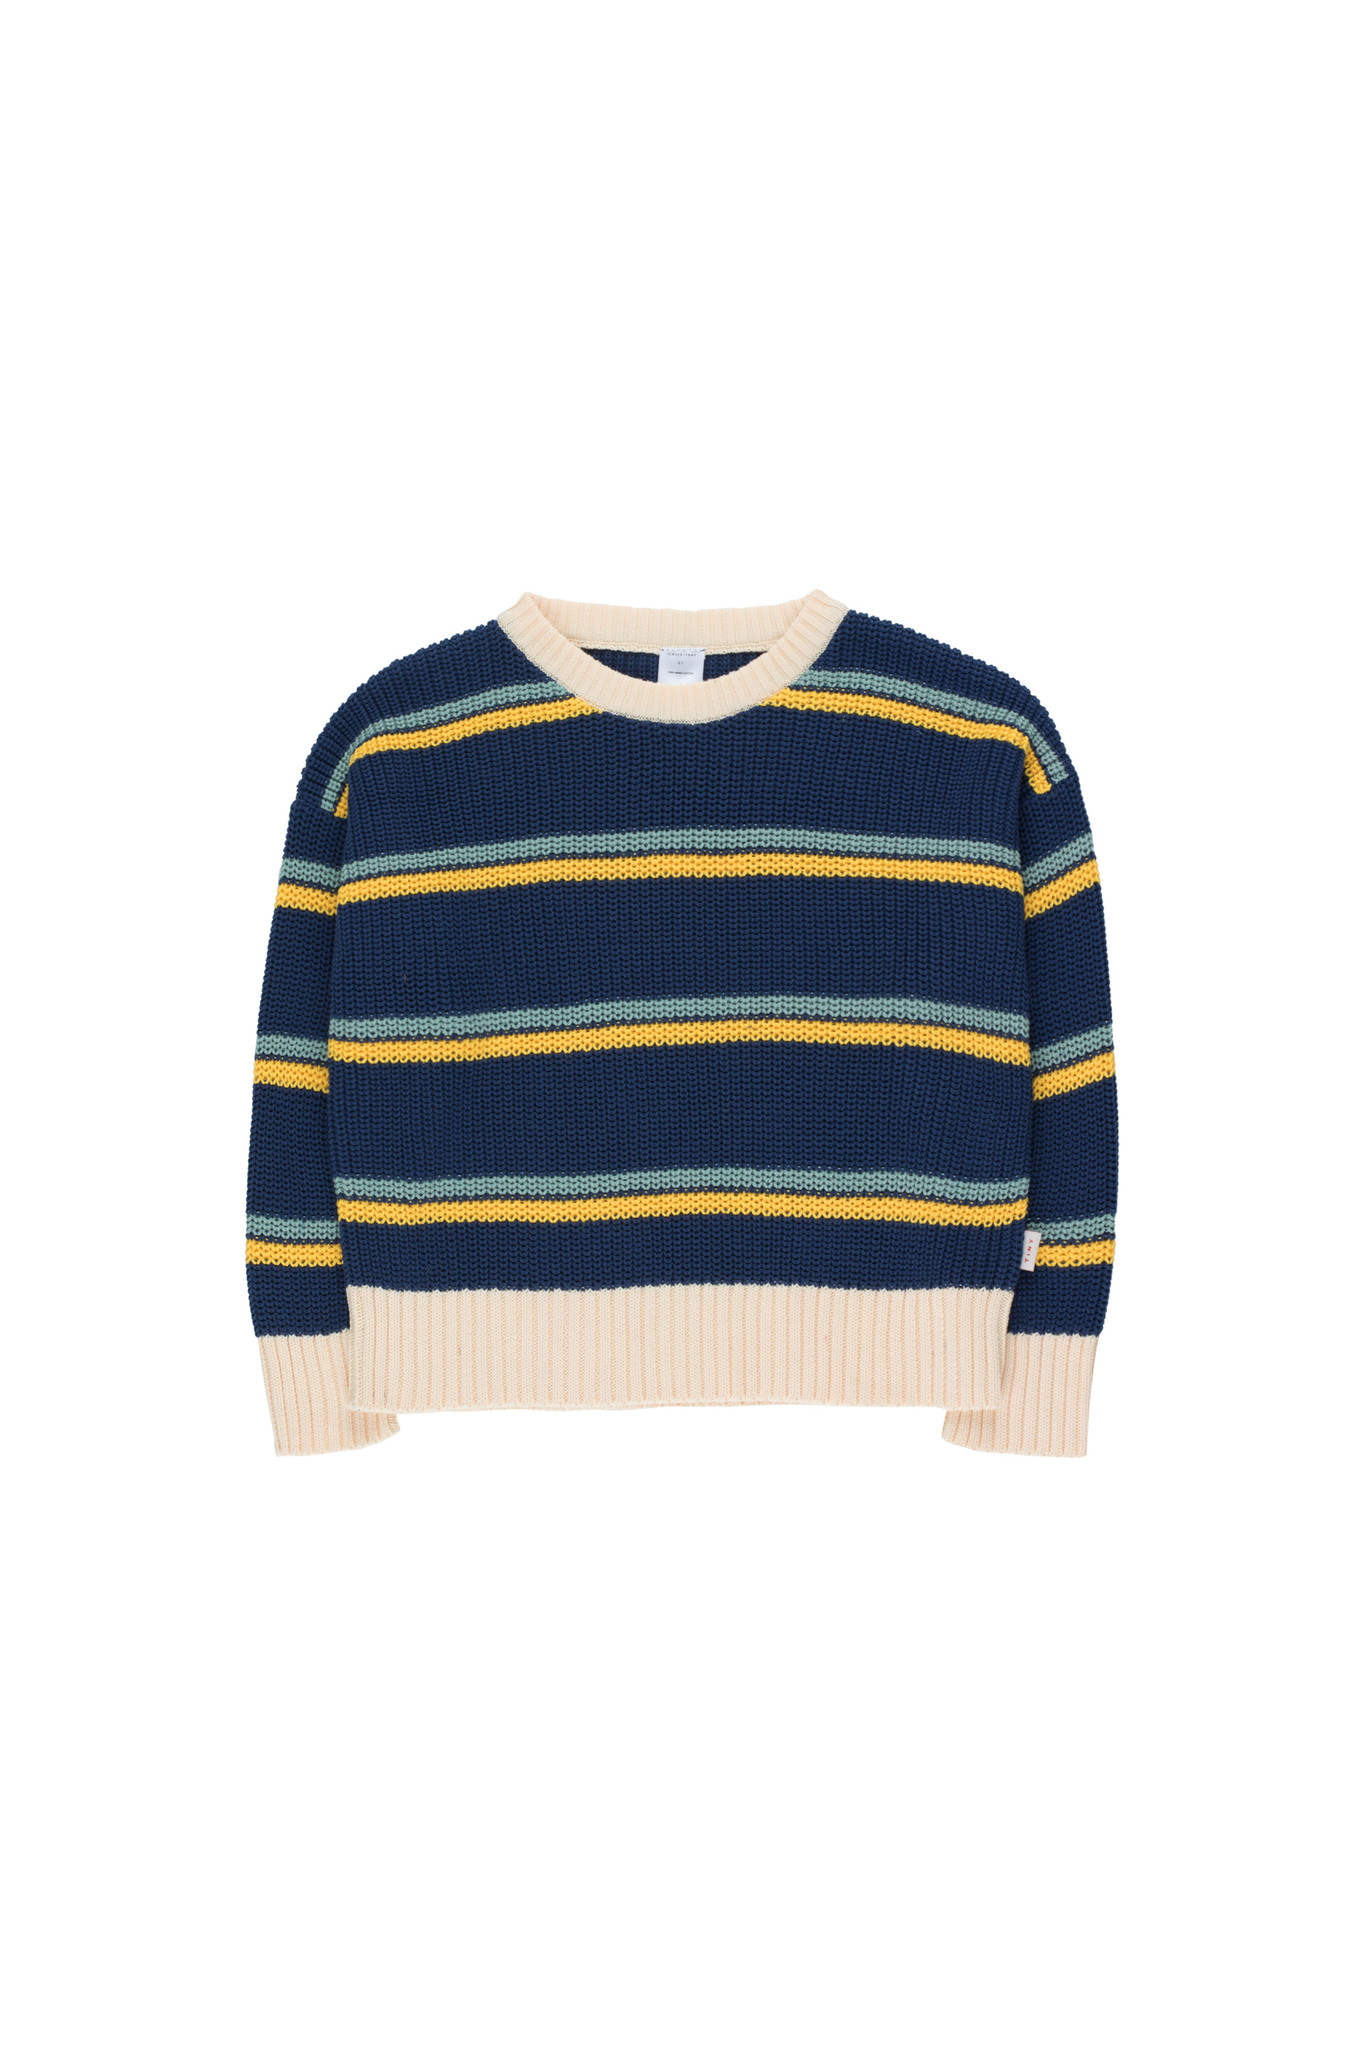 STRIPES SWEATER - Light Navy / Yellow / Sea Green-1